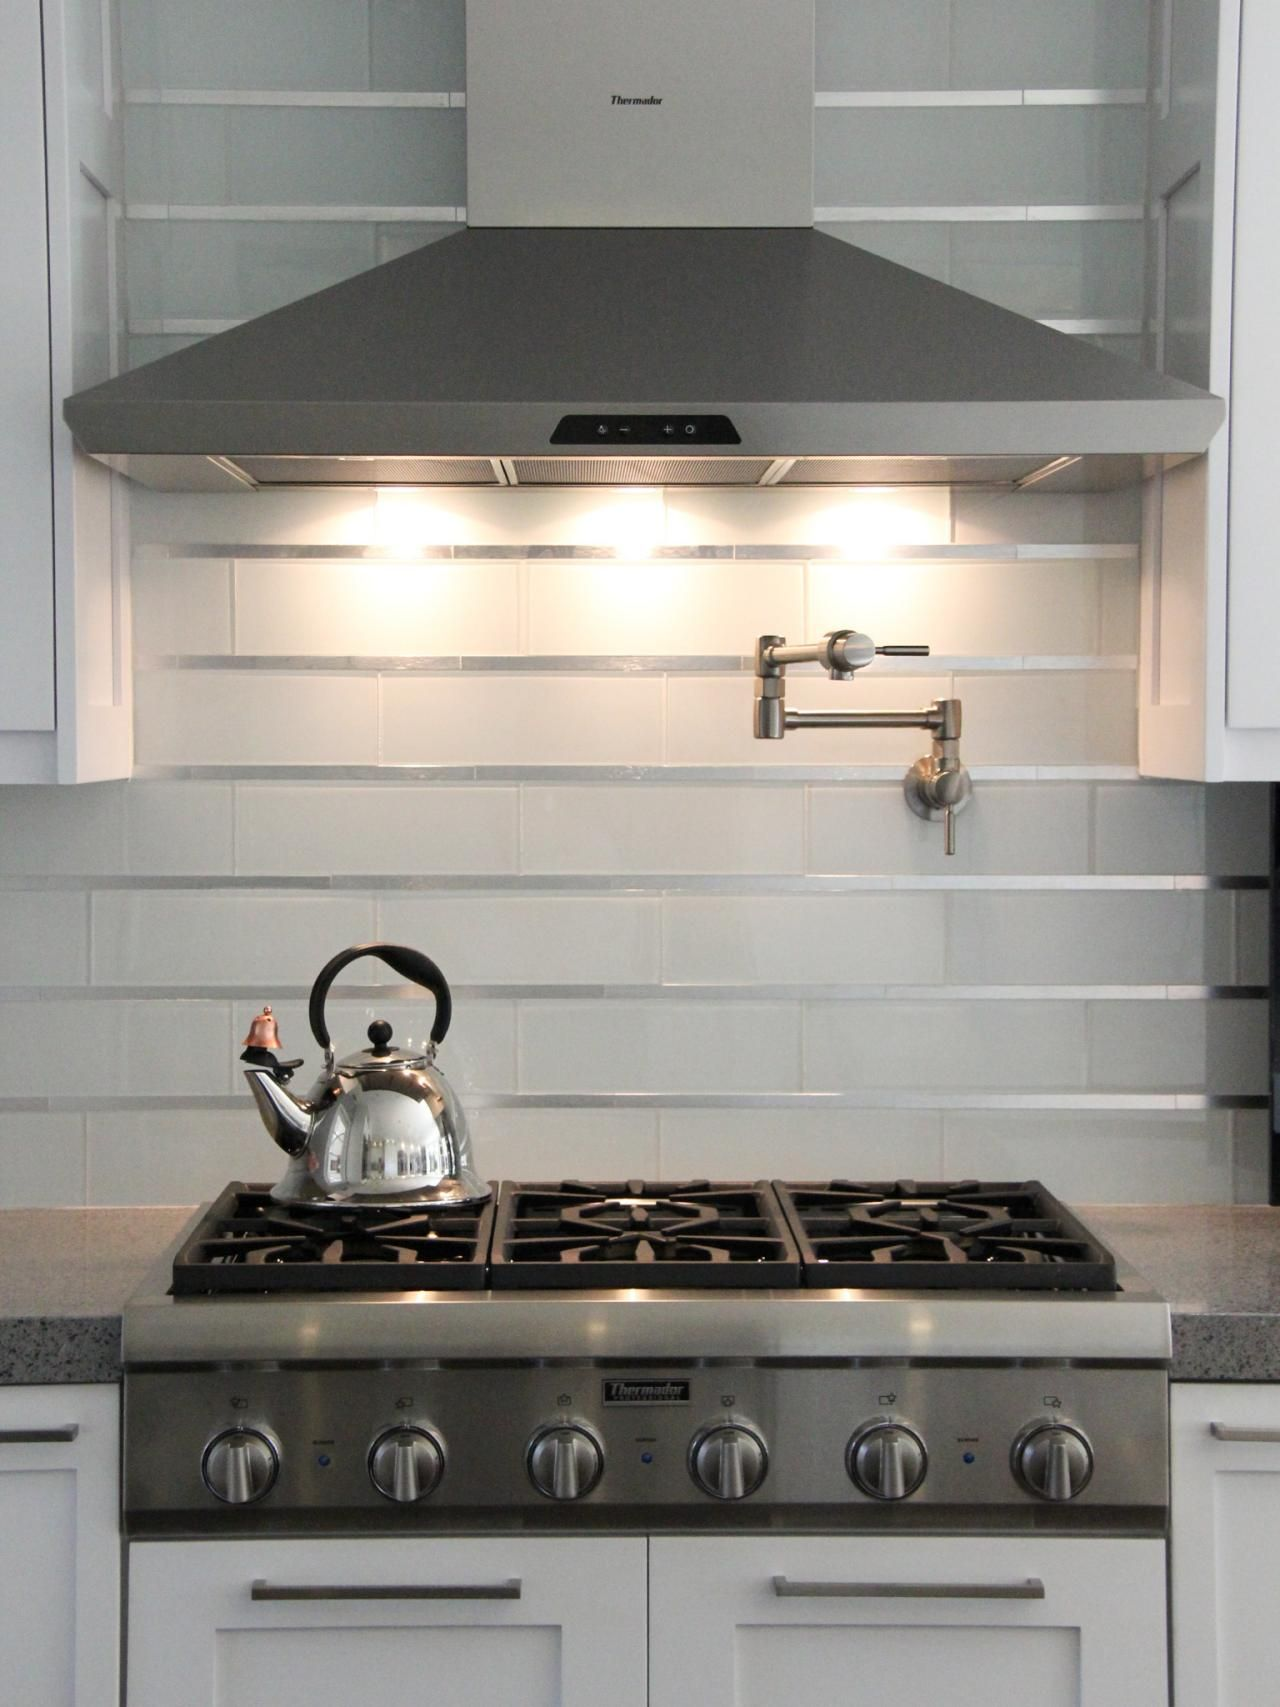 11 Creative Subway Tile Backsplash Ideas Subway Tile Backsplash Backsplash Ideas And Subway Tiles